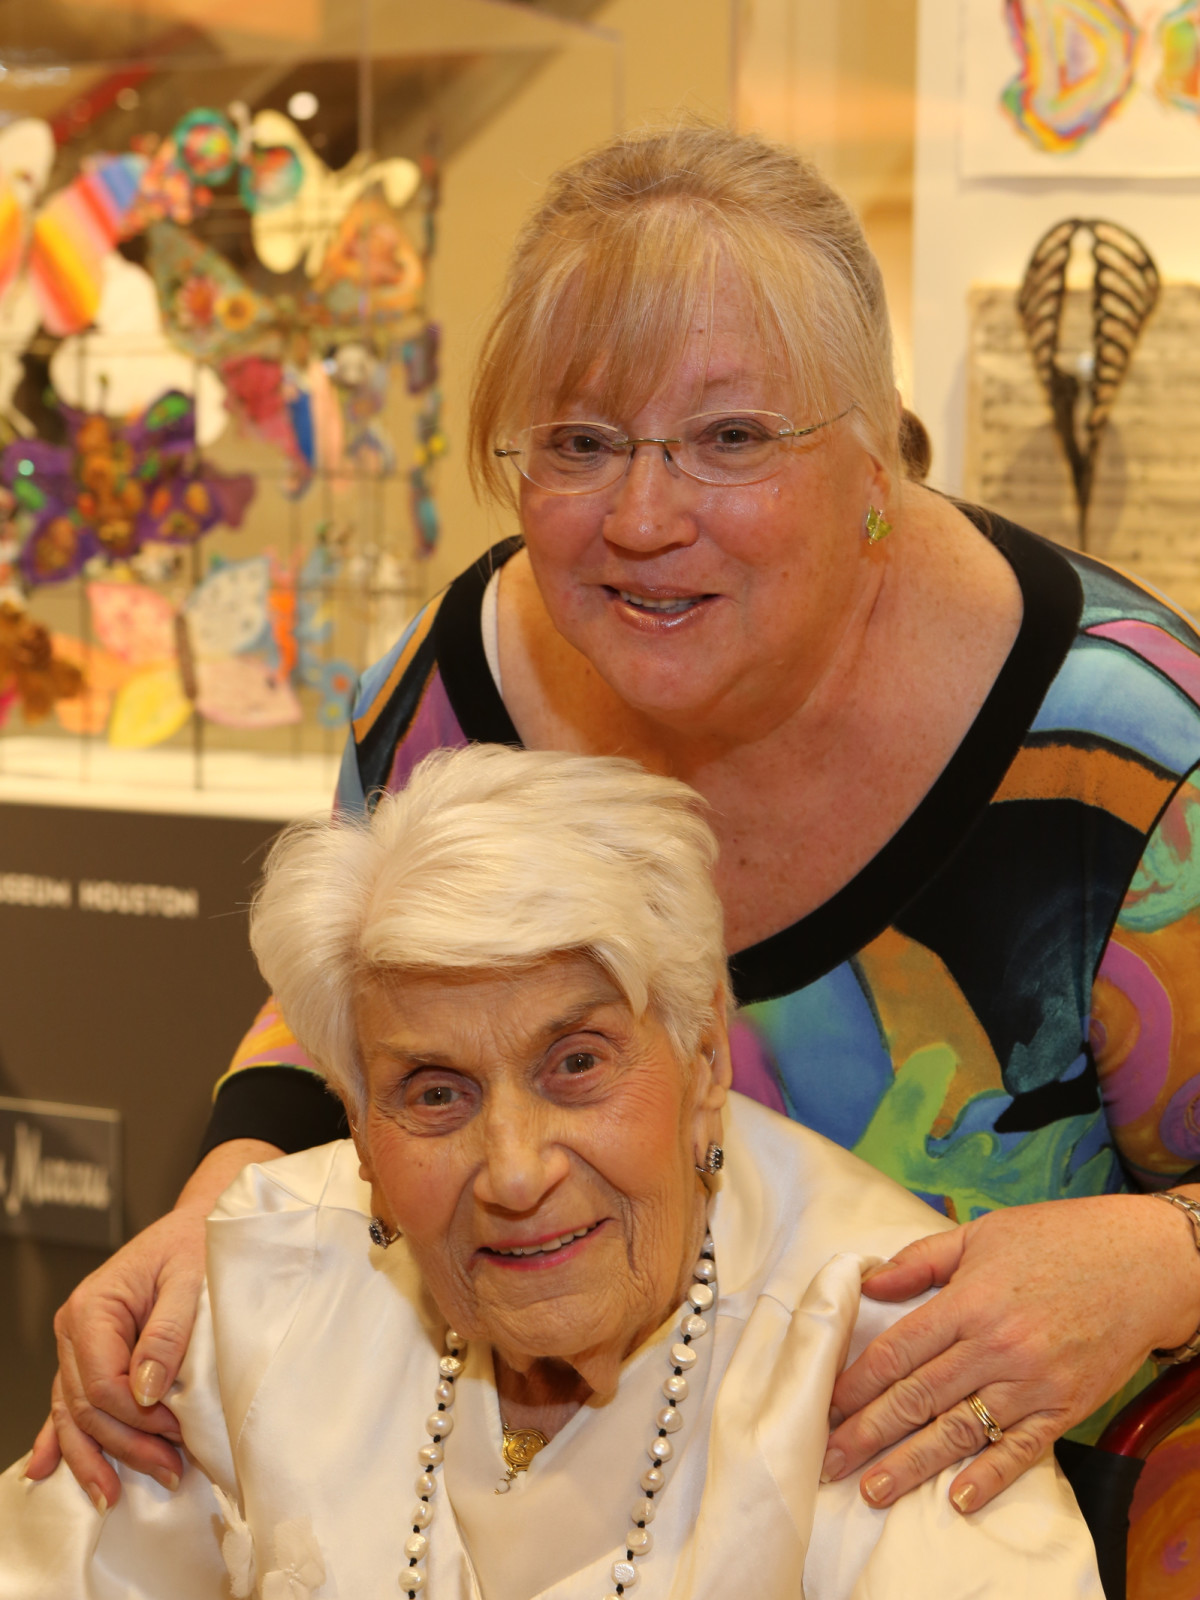 Holocaust Museum Houston Butterfly Project, March 2016, Naomi Warren (Survivor, Board Member), Mary Lee Webeck